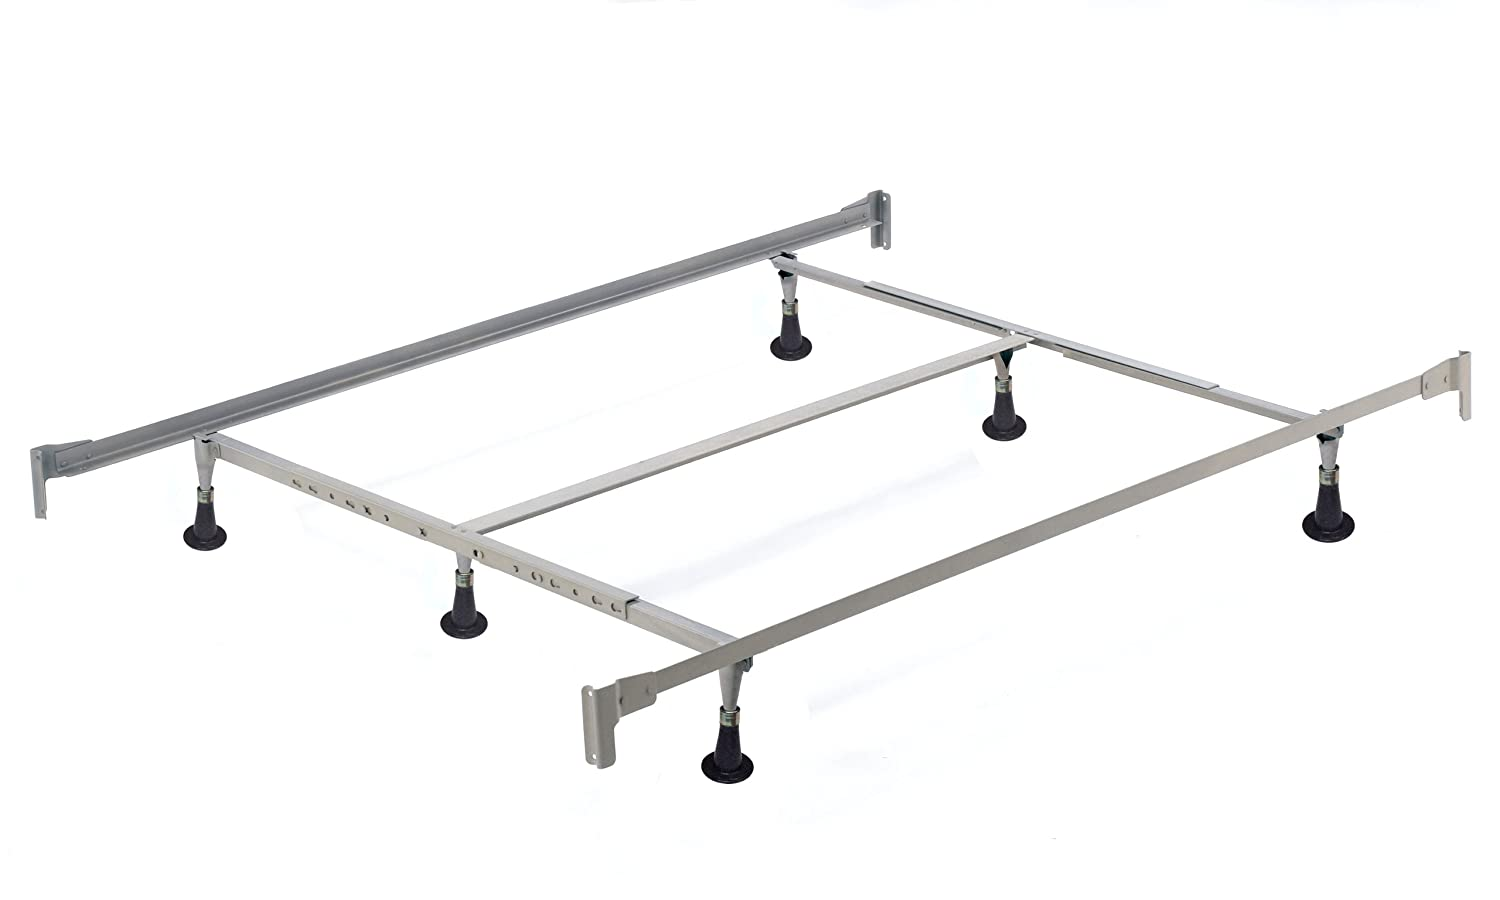 sc 1 st  Amazon.com & Amazon.com: Hillsdale 6 Leg Queen/King Bed Frame: Kitchen u0026 Dining